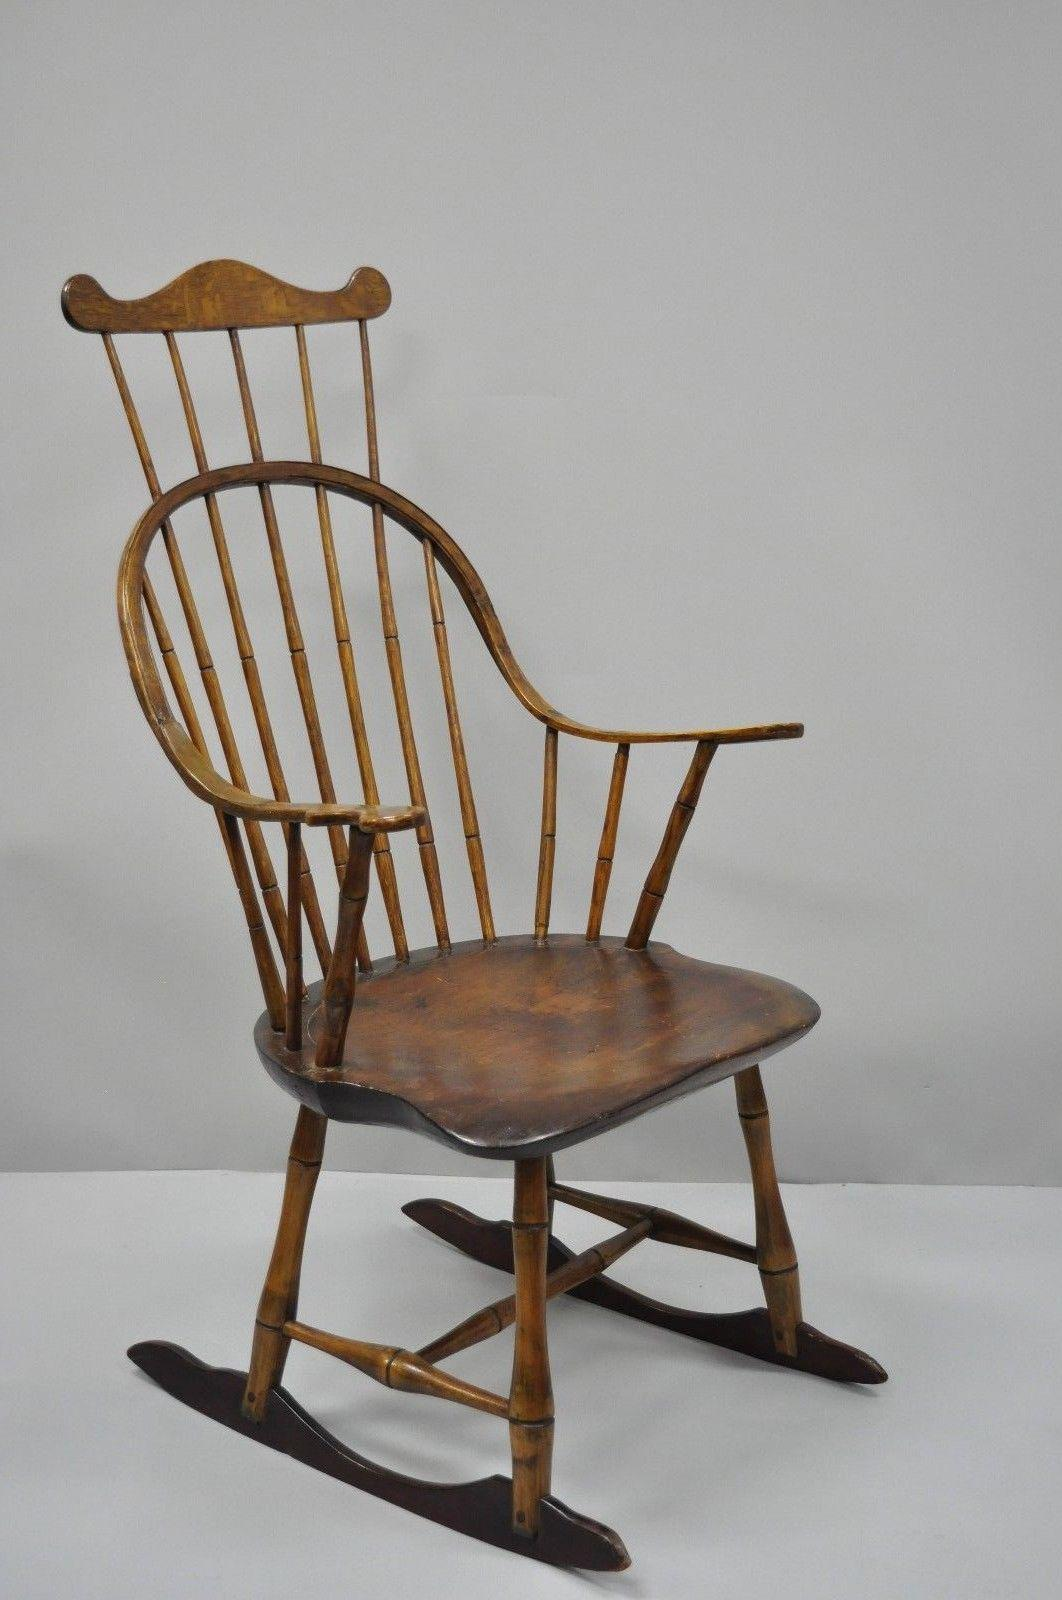 Incroyable Antique Colonial Bow Back Windsor Oak U0026 Pine Rocking Chair For Sale   Image  12 Of